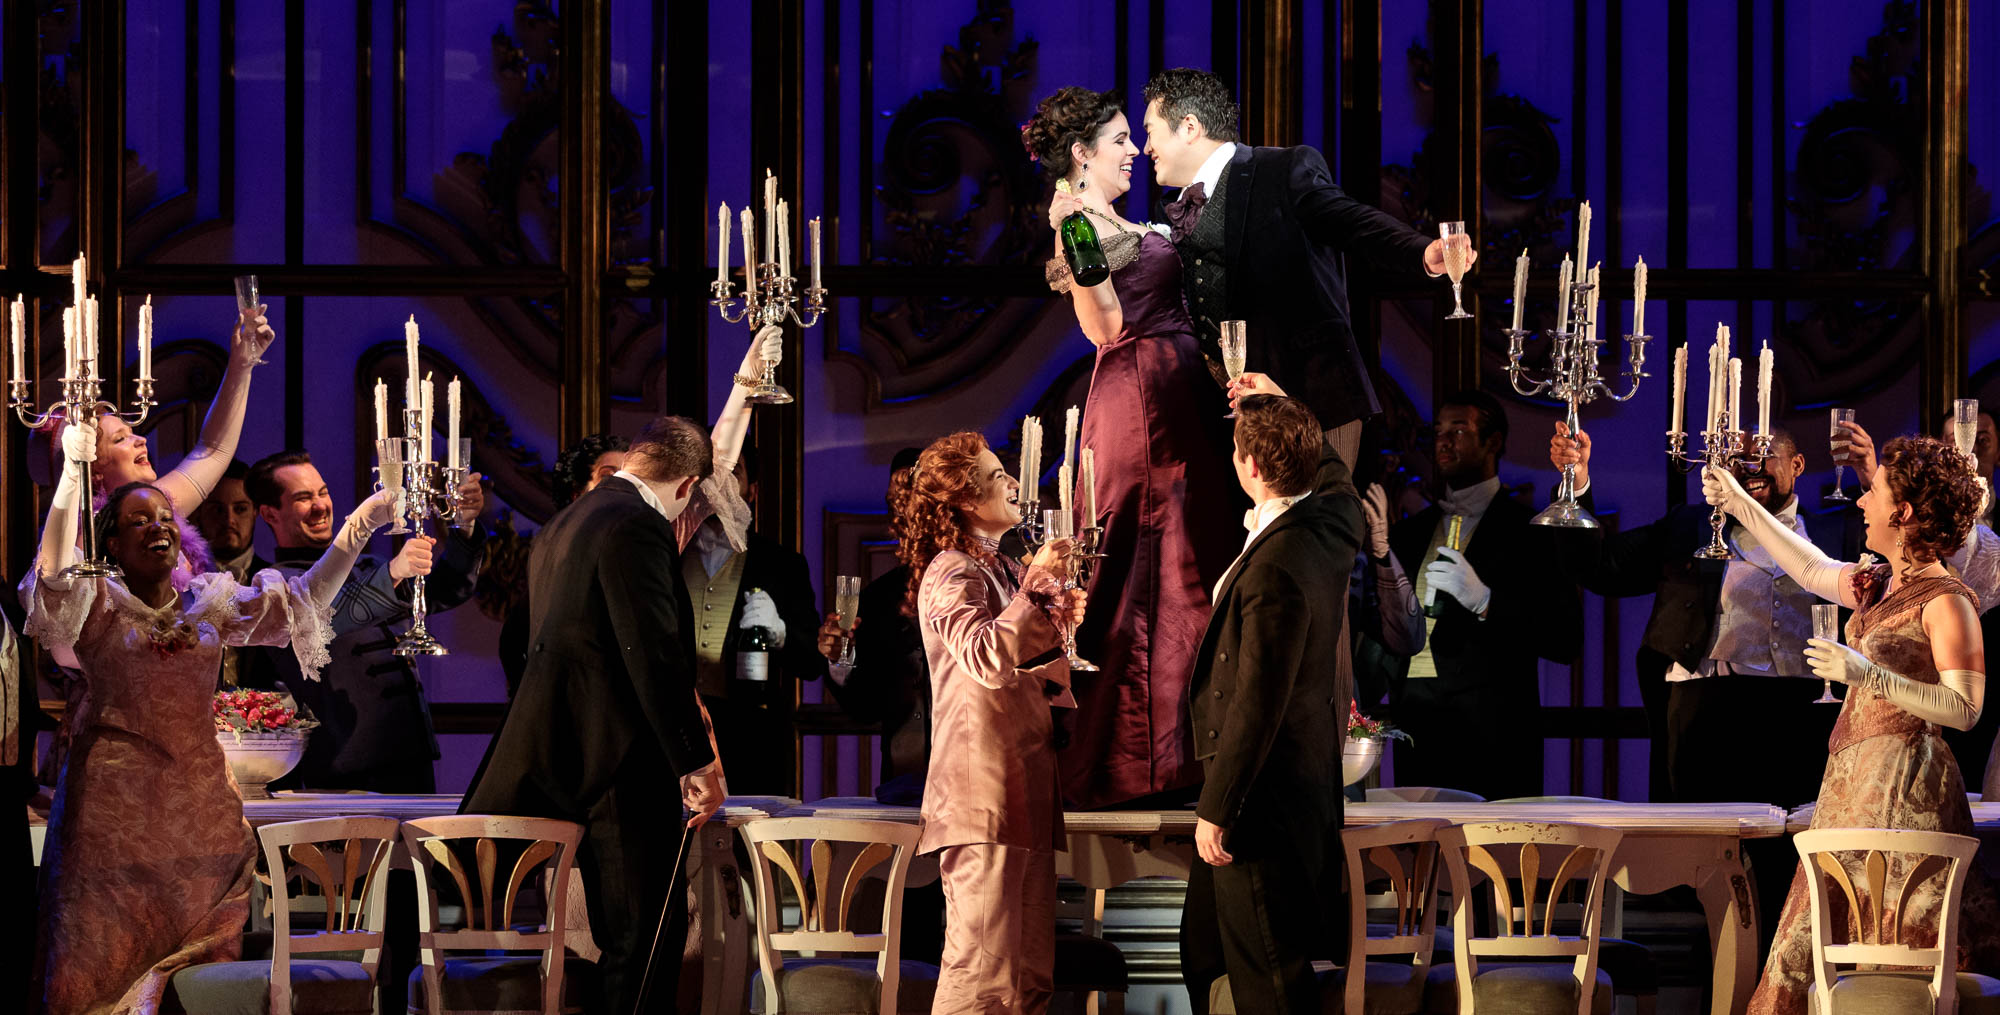 Cast raises candles to couple, center, in the 2019 production of La traviata.